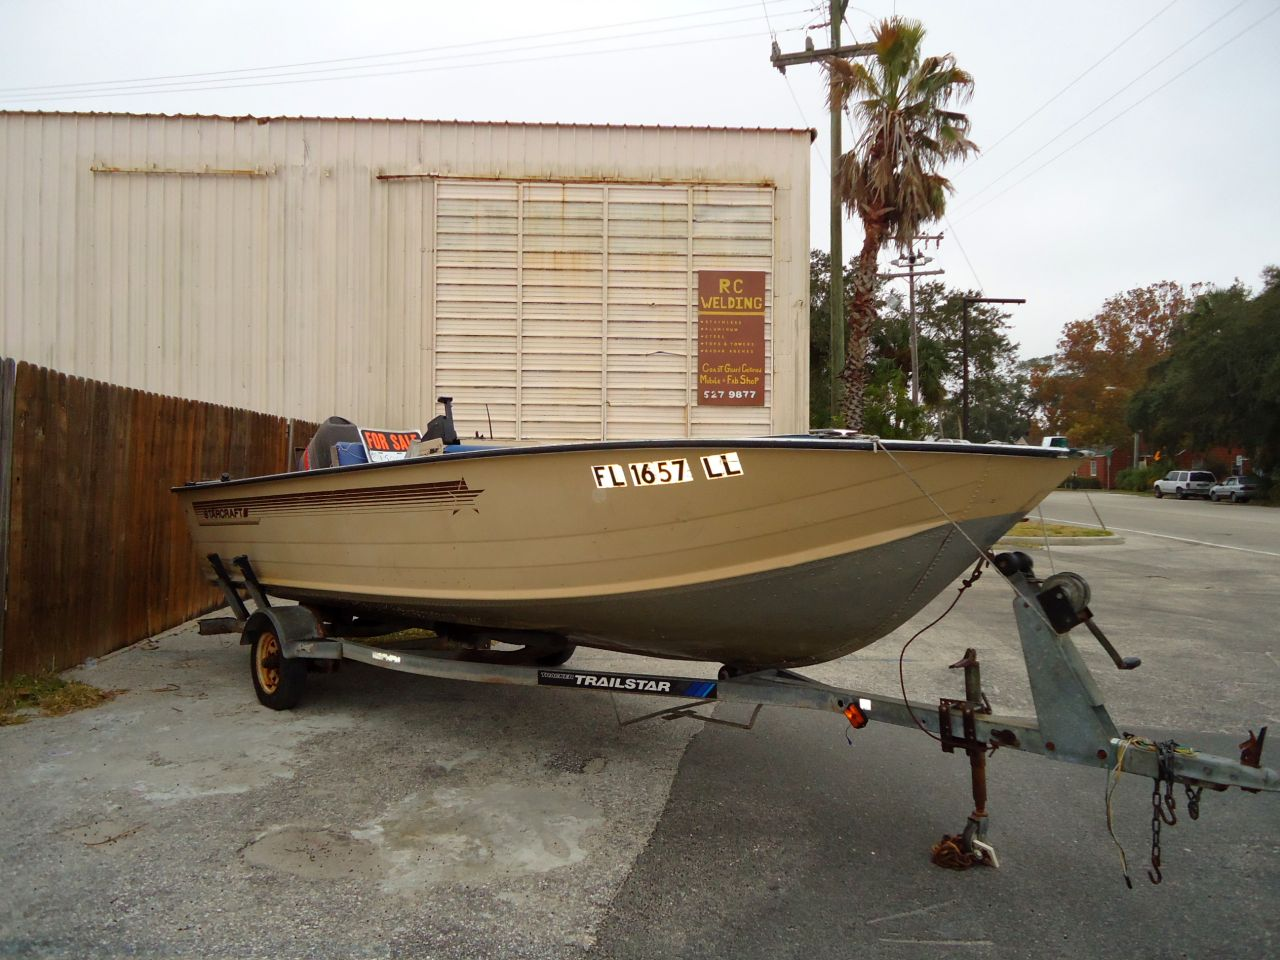 Craigslist Daytona Beach Florida >> Small Boat Plans And Kits